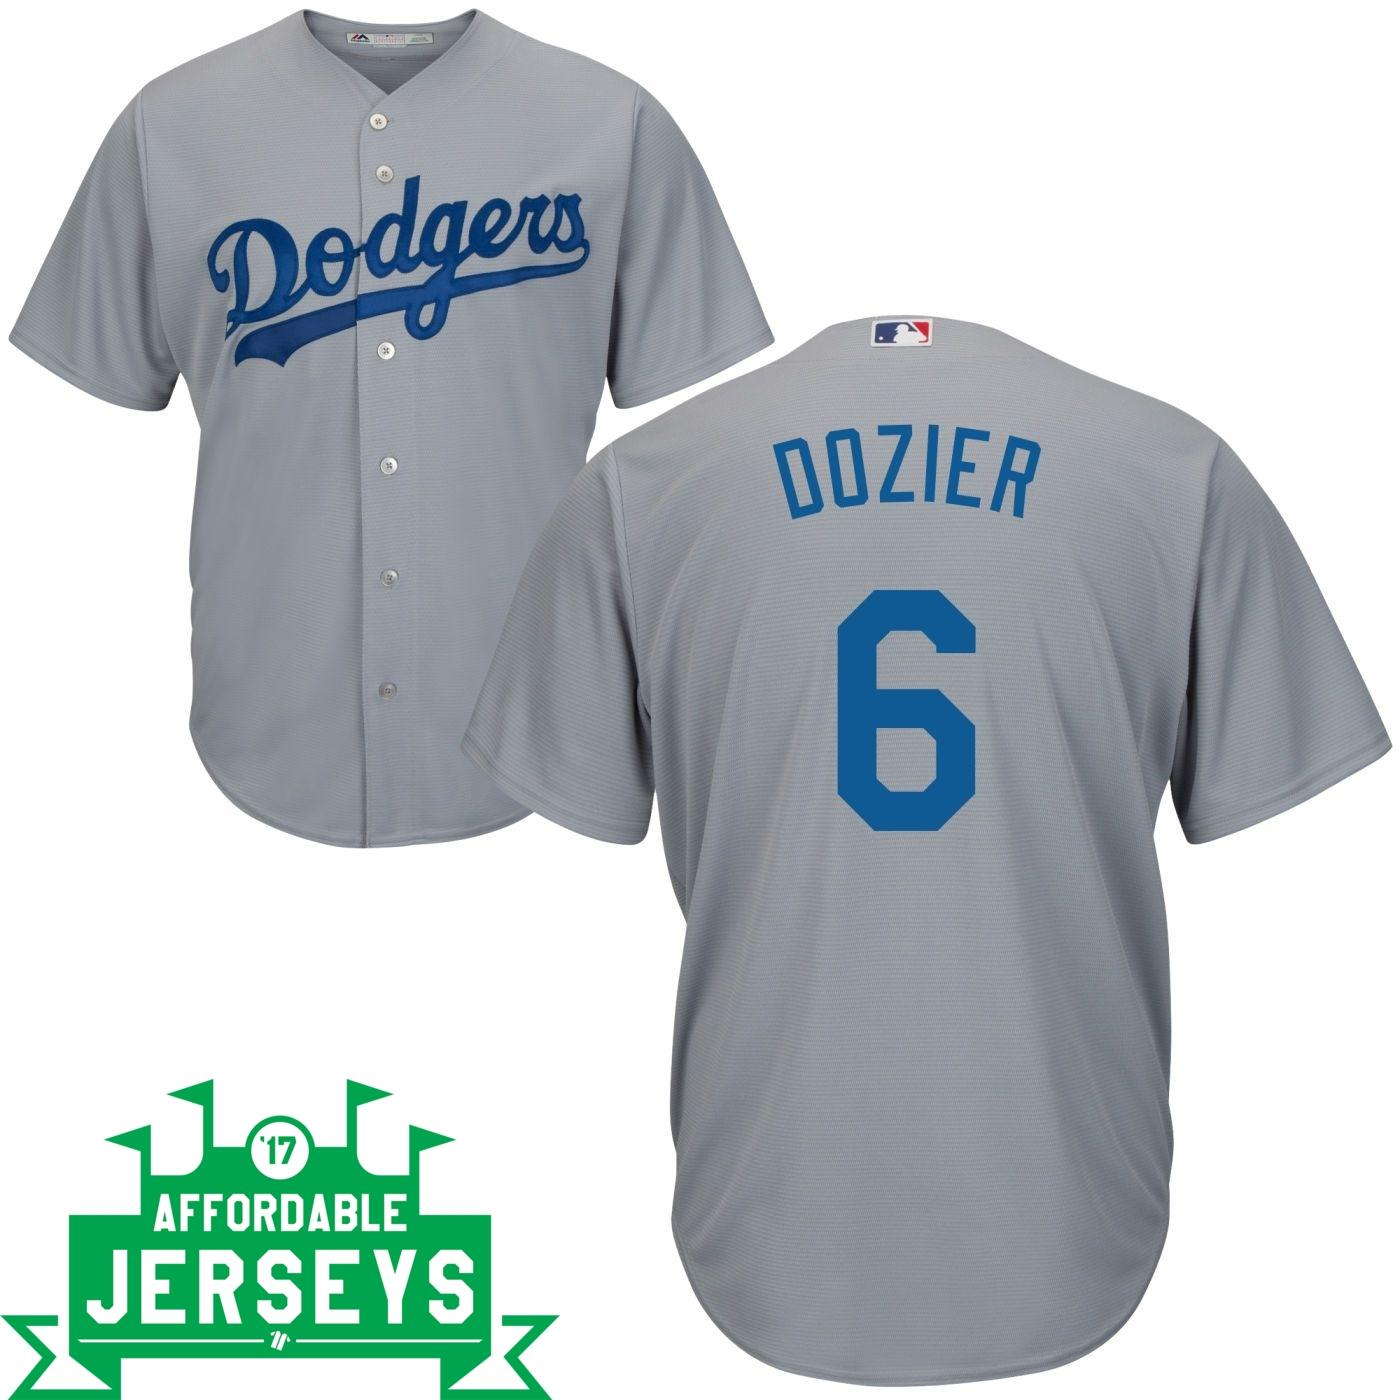 Brian Dozier Road Cool Base Player Jersey - AffordableJerseys.com